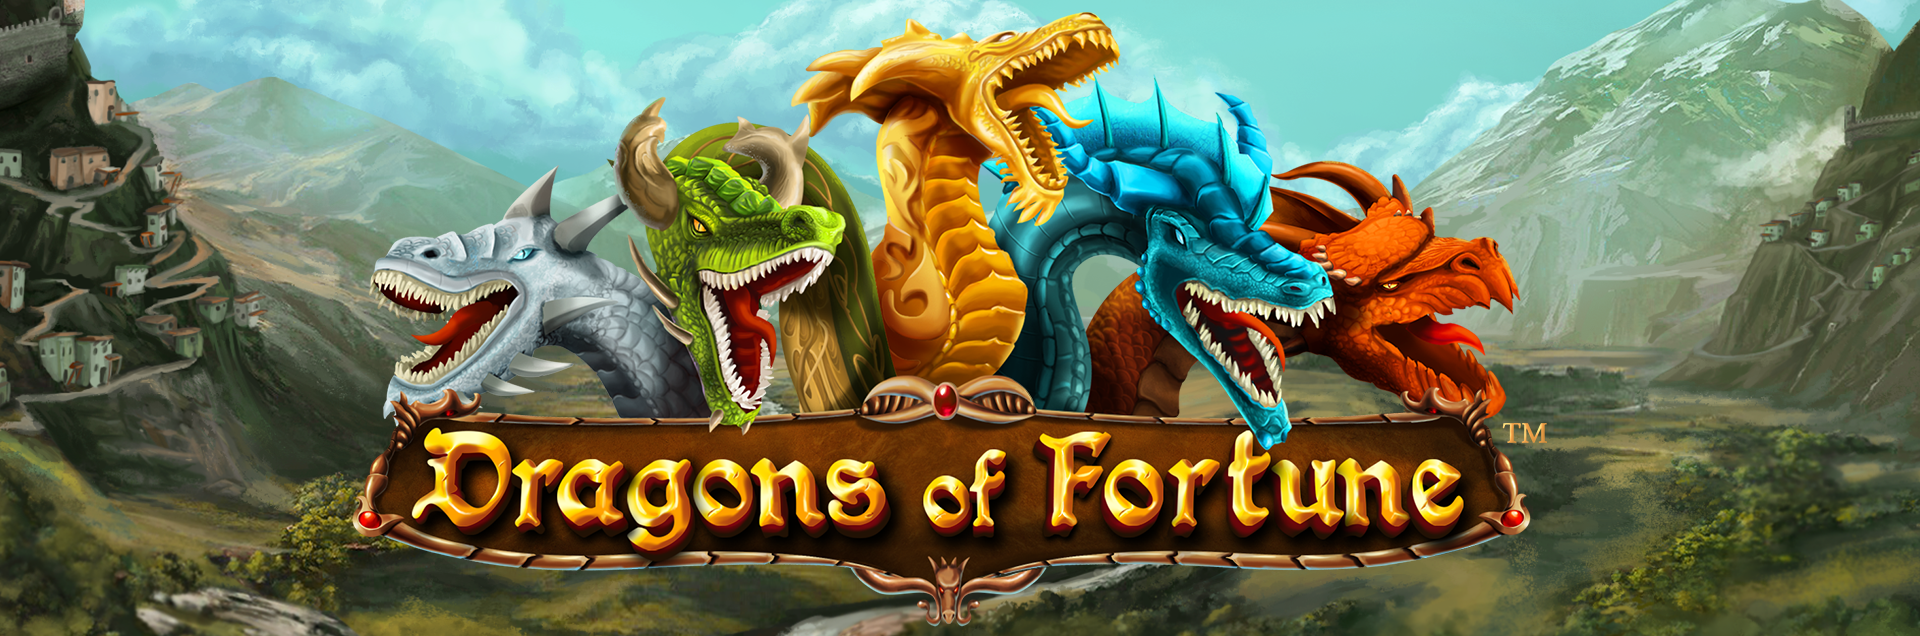 DragonsofFortune Image Header